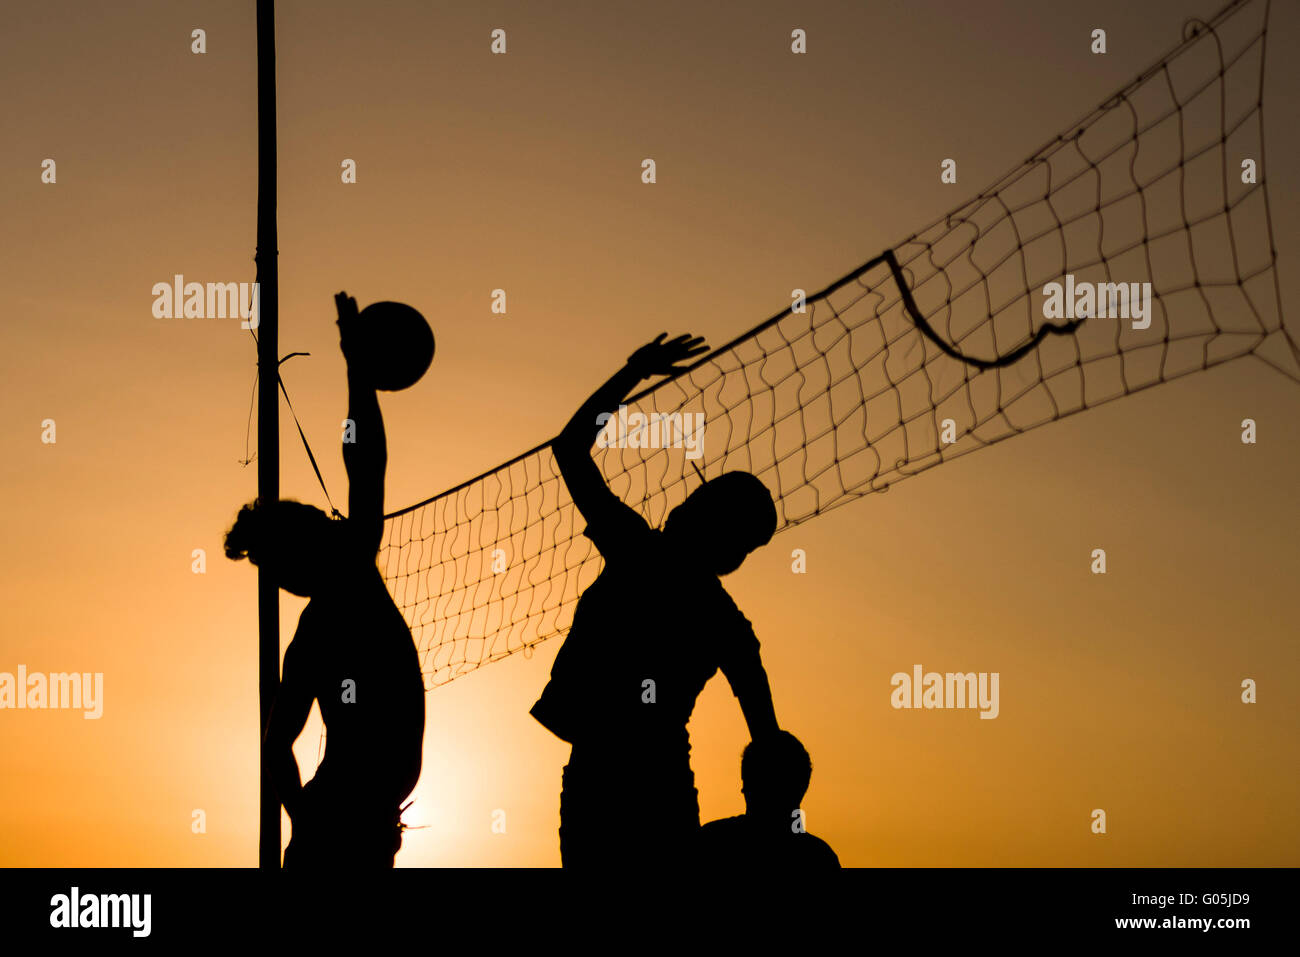 Volleyball playing people silhouettes with vollayball and the net. - Stock Image